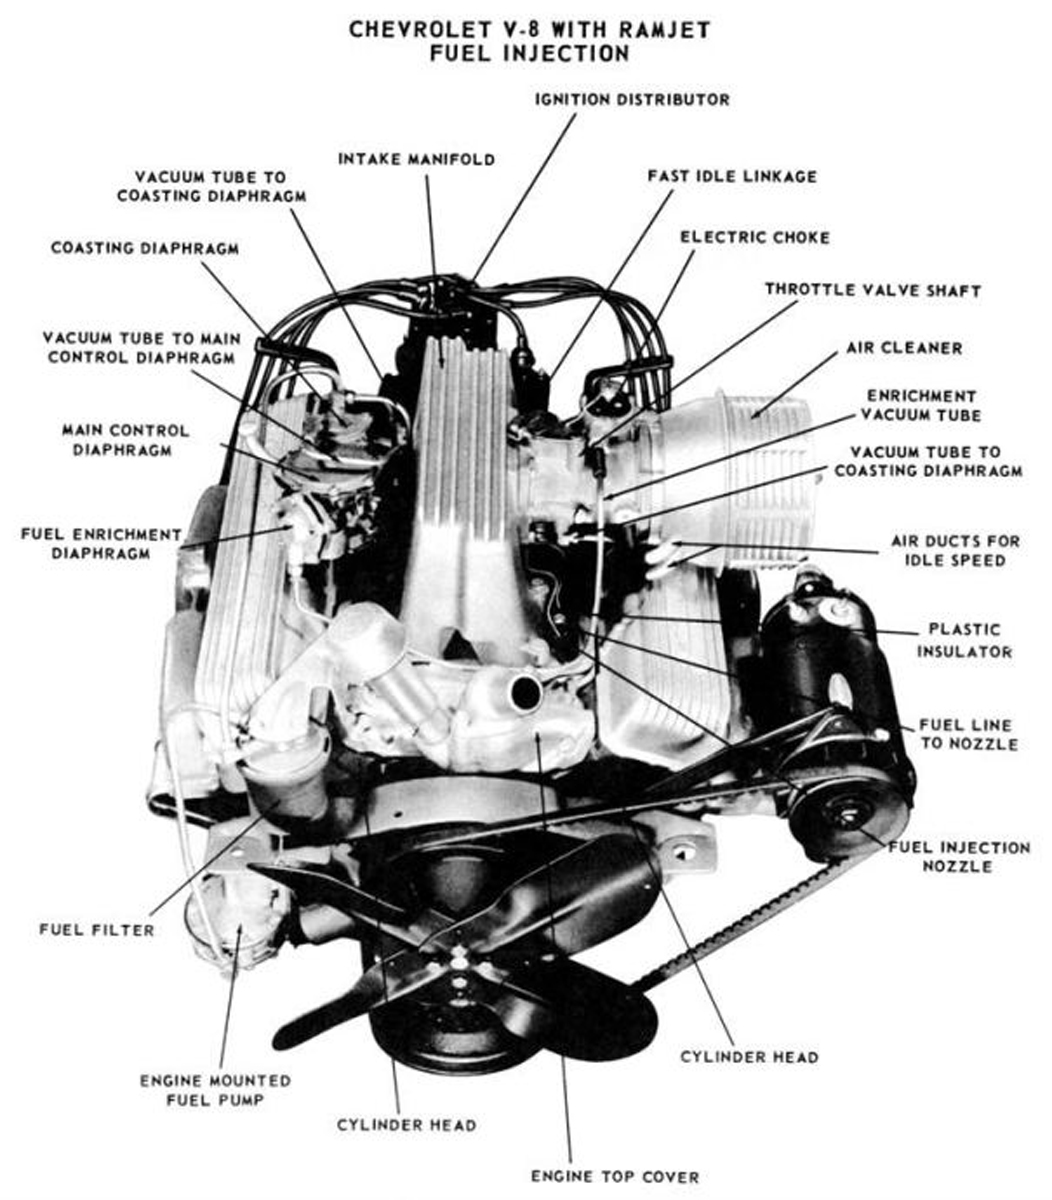 Throwback Thursday Chevrolet S Ramjet Fuel Injection